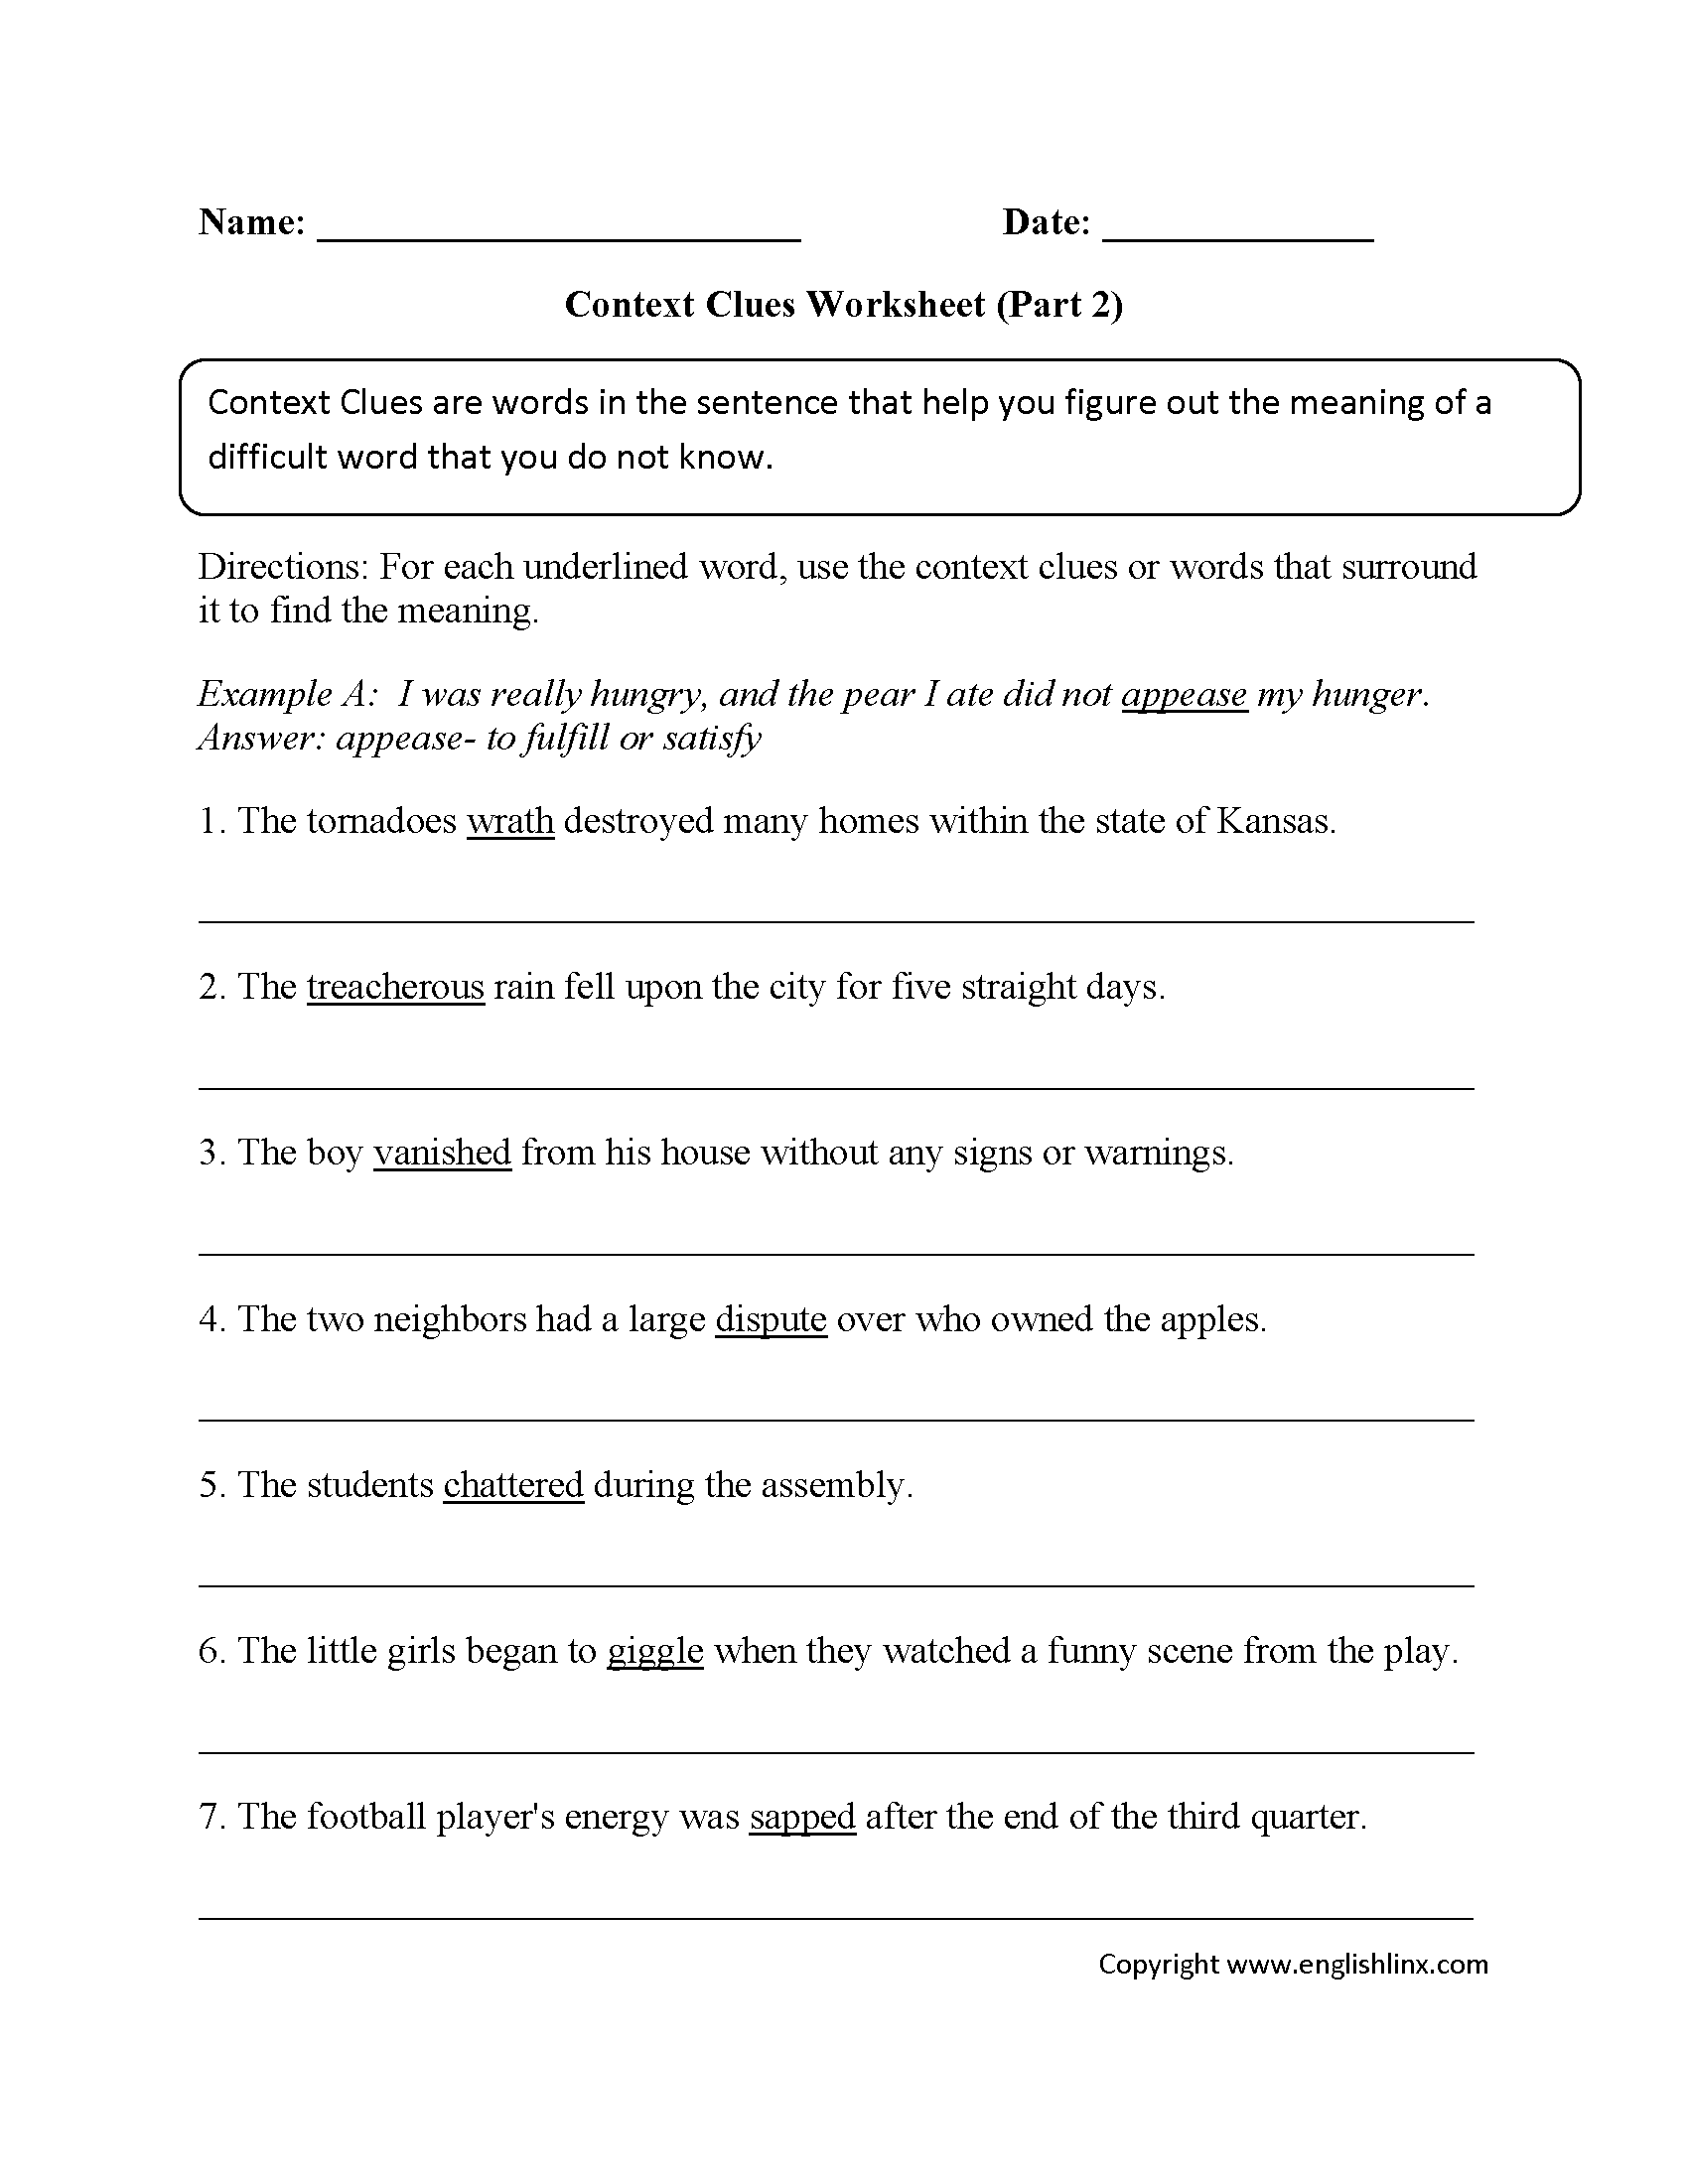 Free Worksheet Context Clues Worksheets 3rd Grade englishlinx com context clues worksheets part 2 intermediate